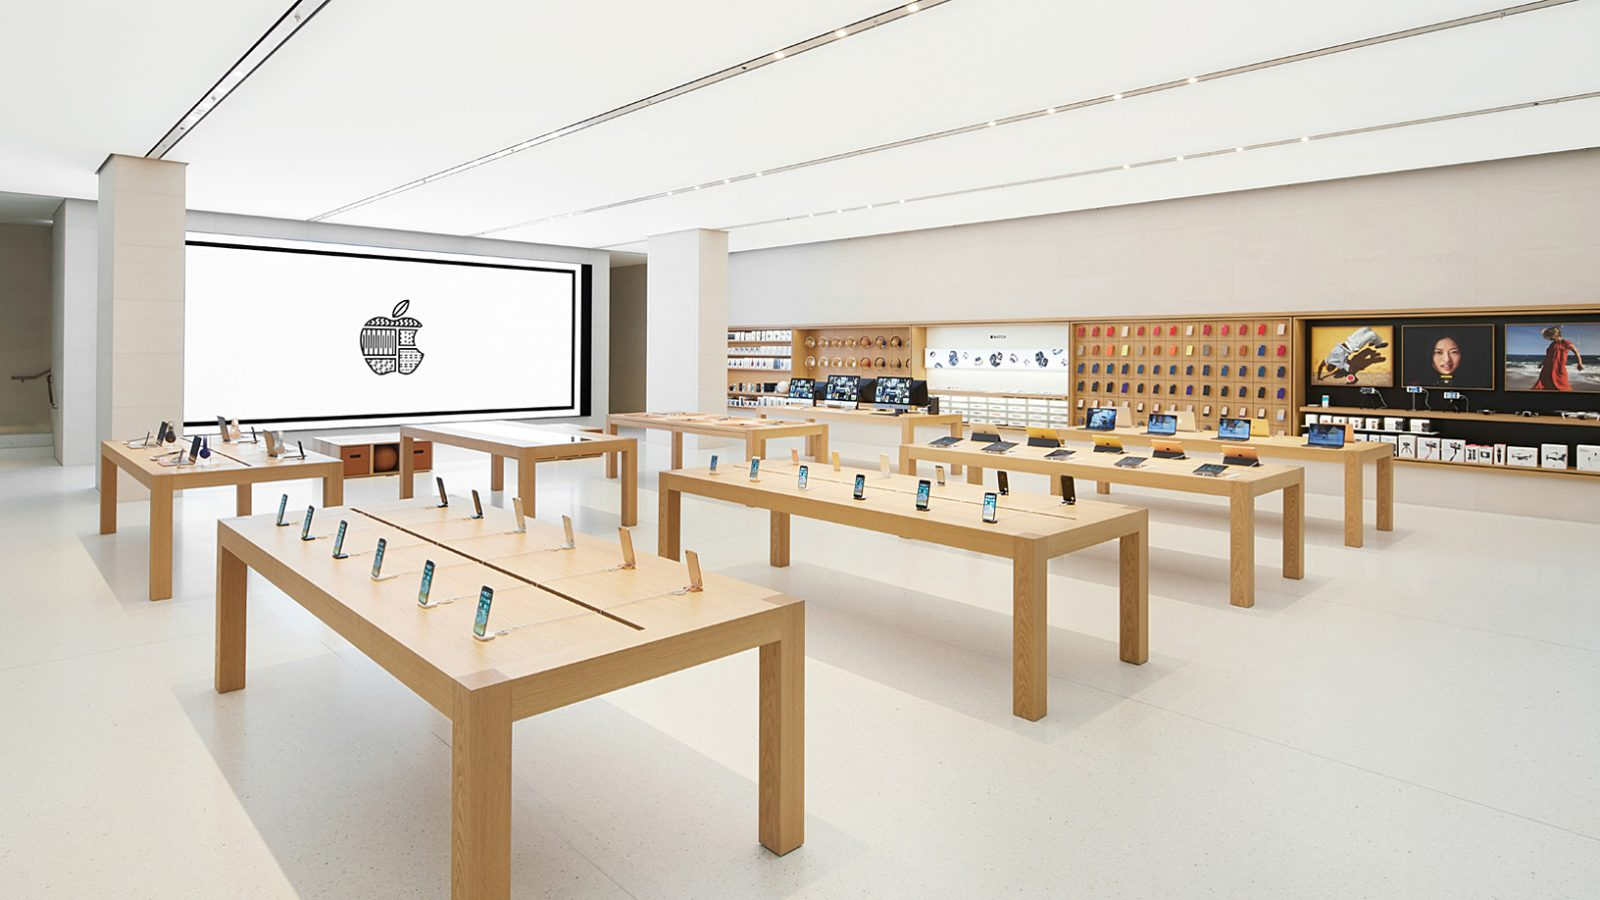 Austria's single Apple Store set to cautiously reopen on May 5 - 9to5Mac